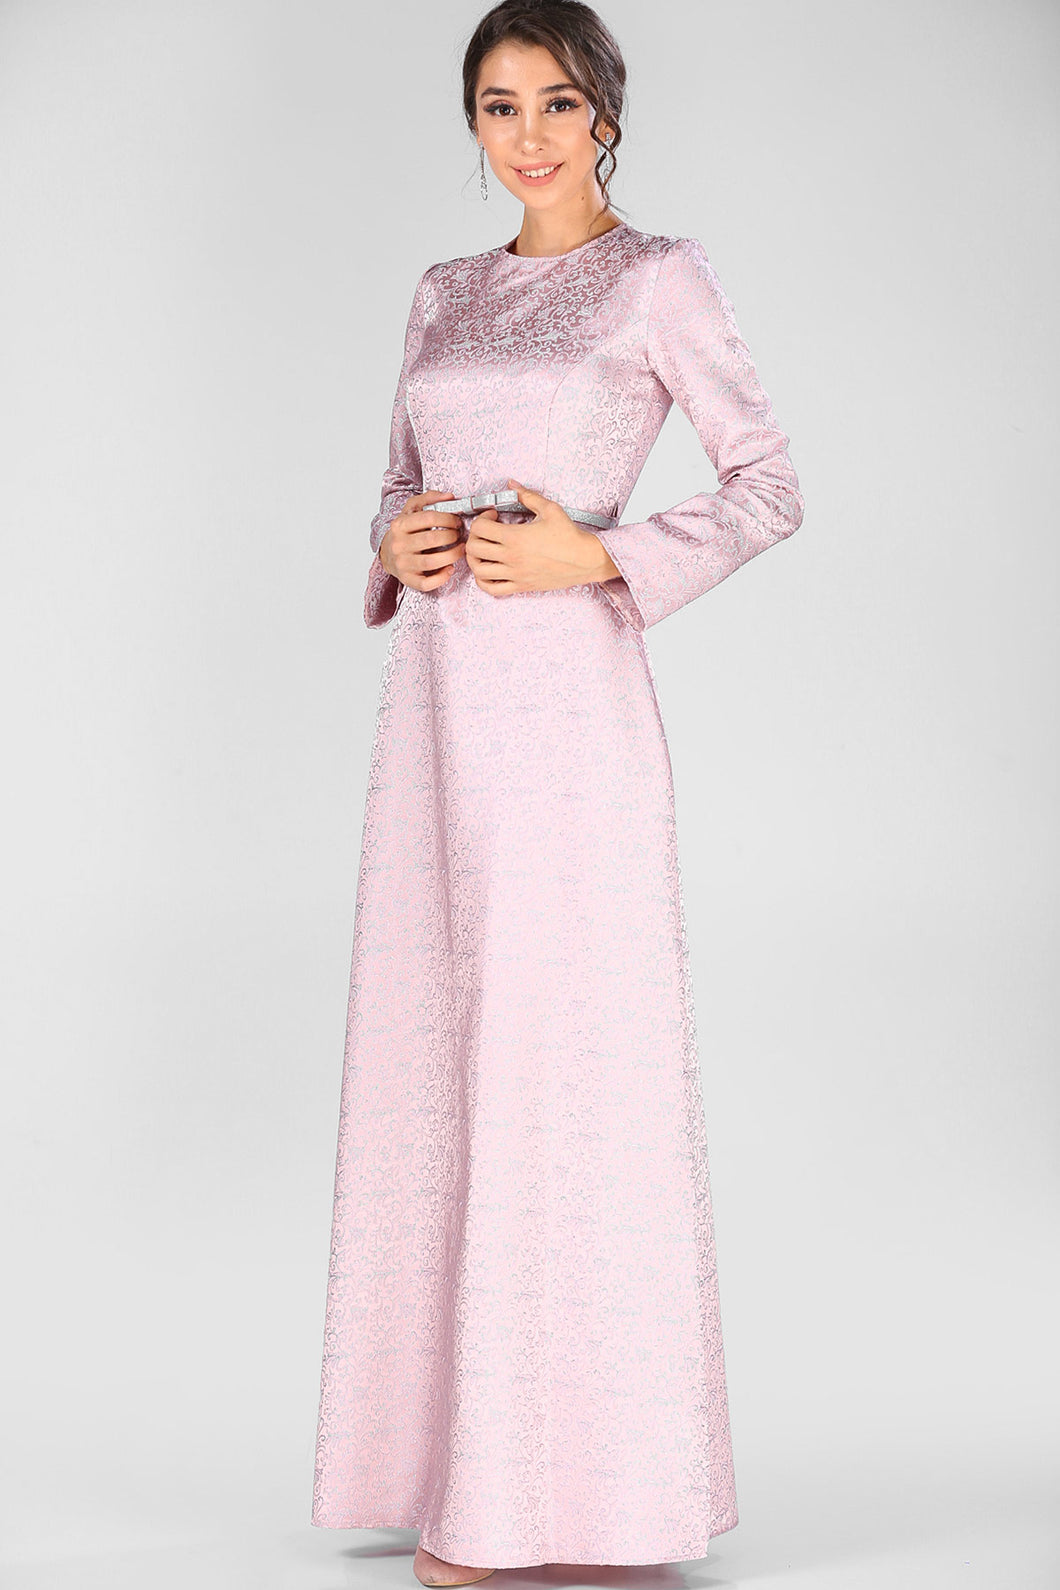 Belted Waist Dusty Rose Evening Gown